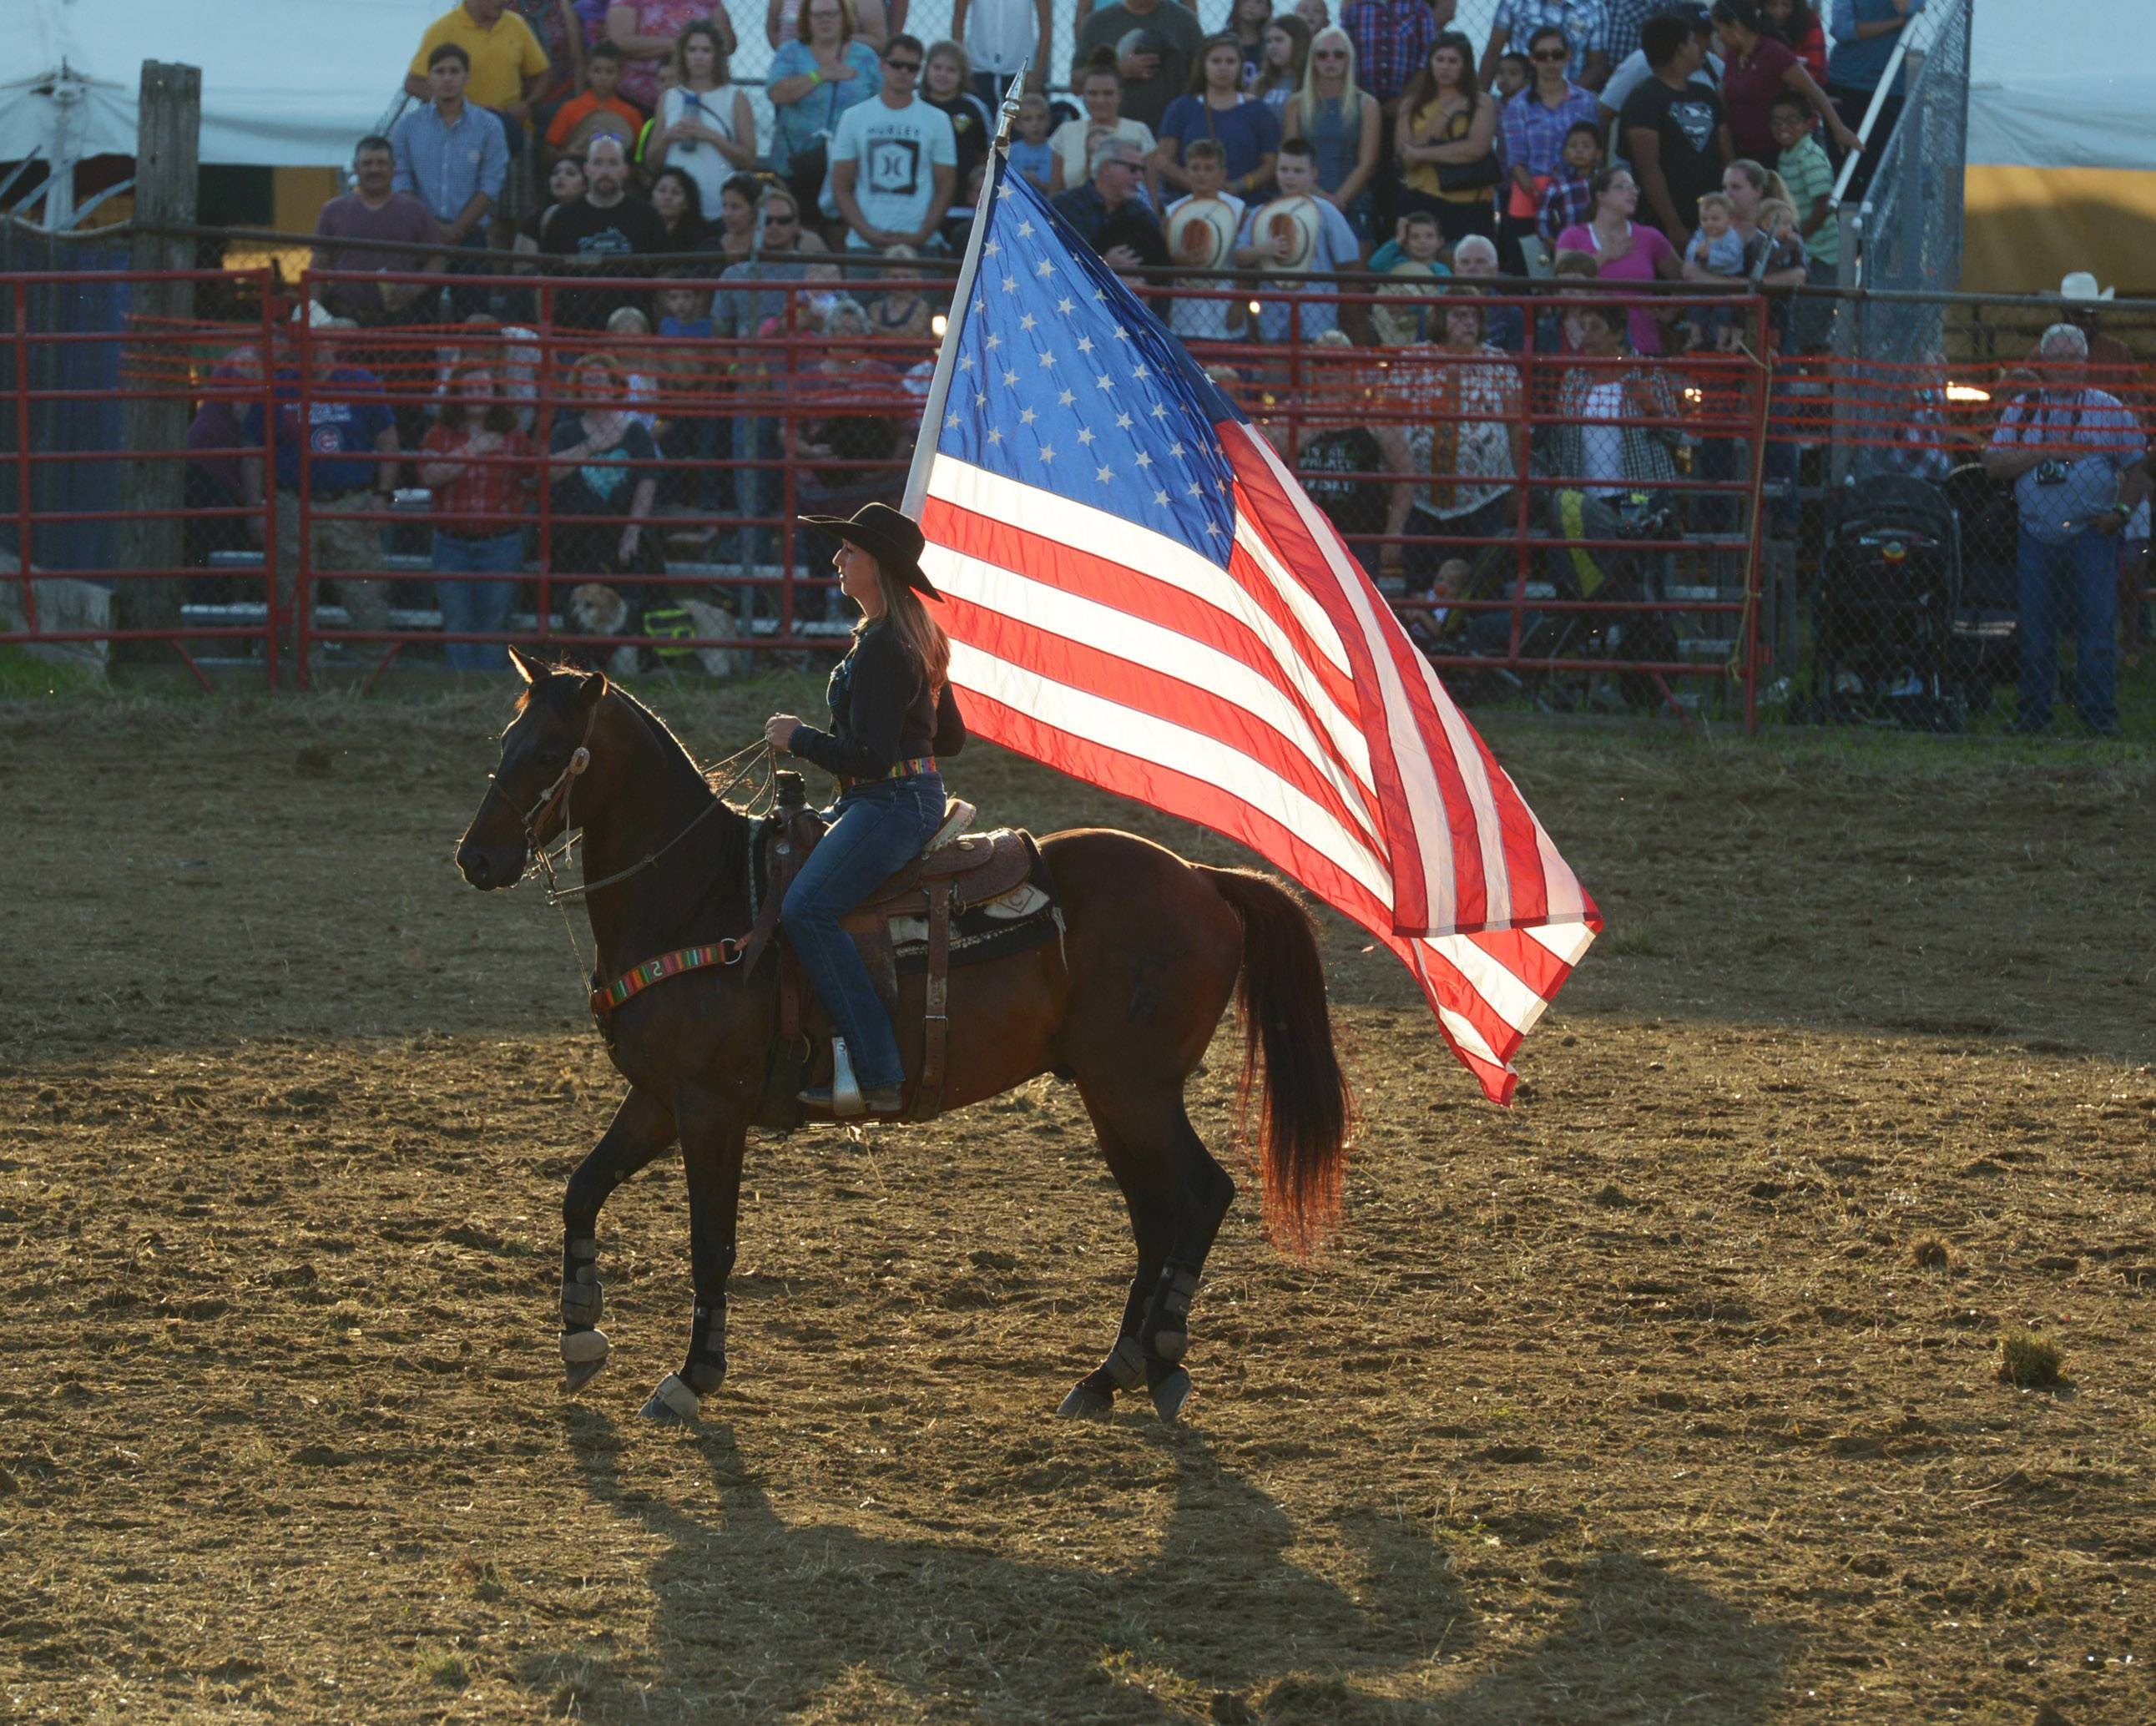 Cobie Norris carries the flag during the 54th annual IPRA Championship rodeo Saturday in Wauconda.